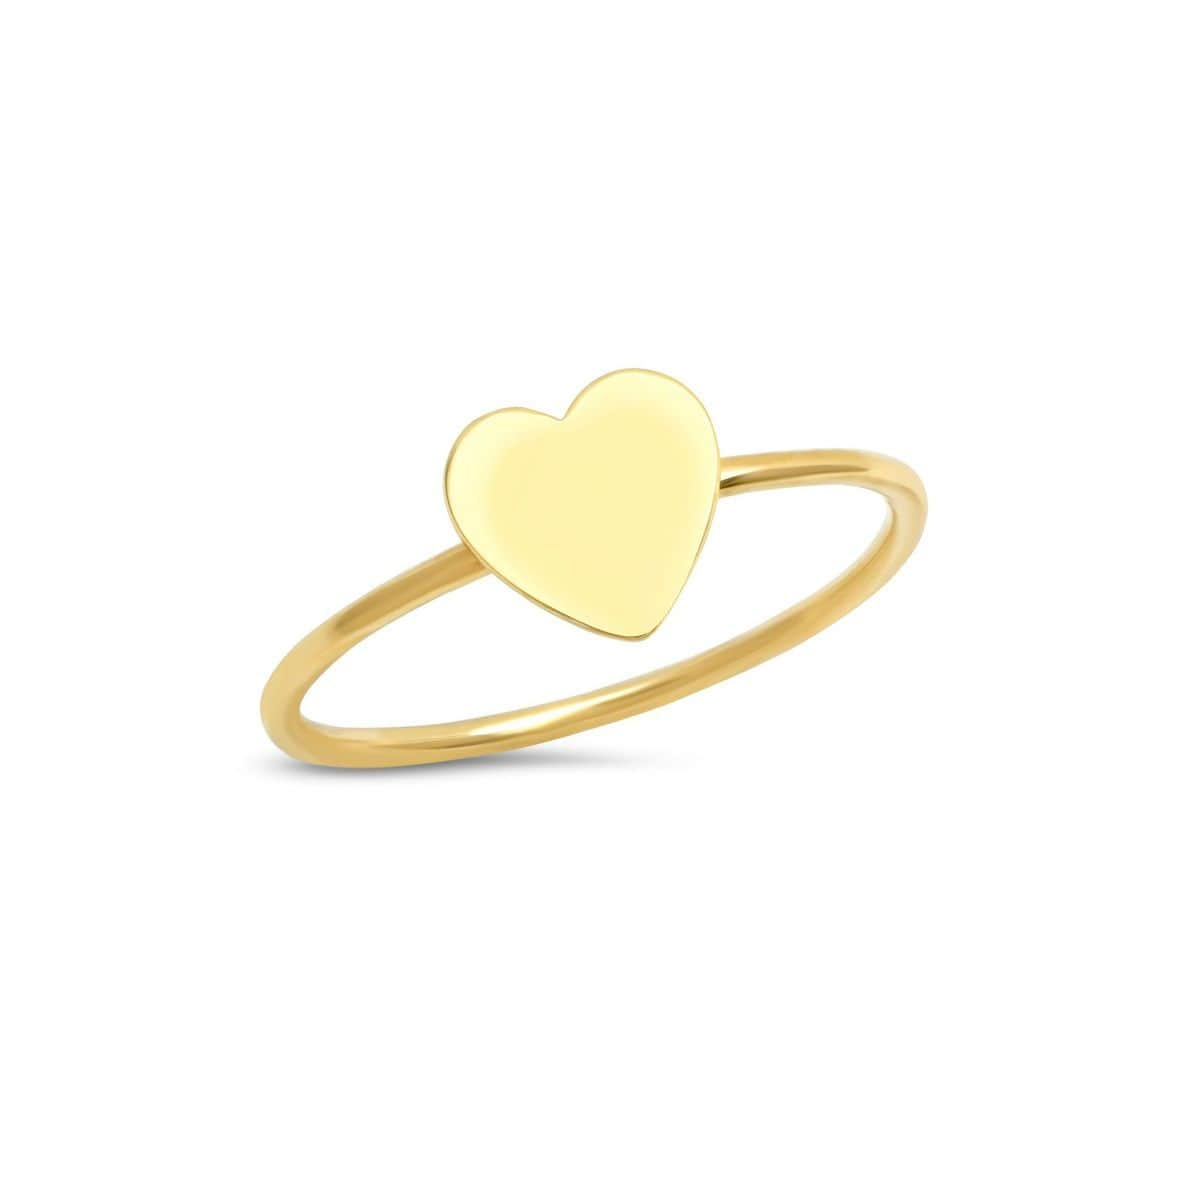 14k flat heart ring Caitlin Nicole Curated Los Angeles